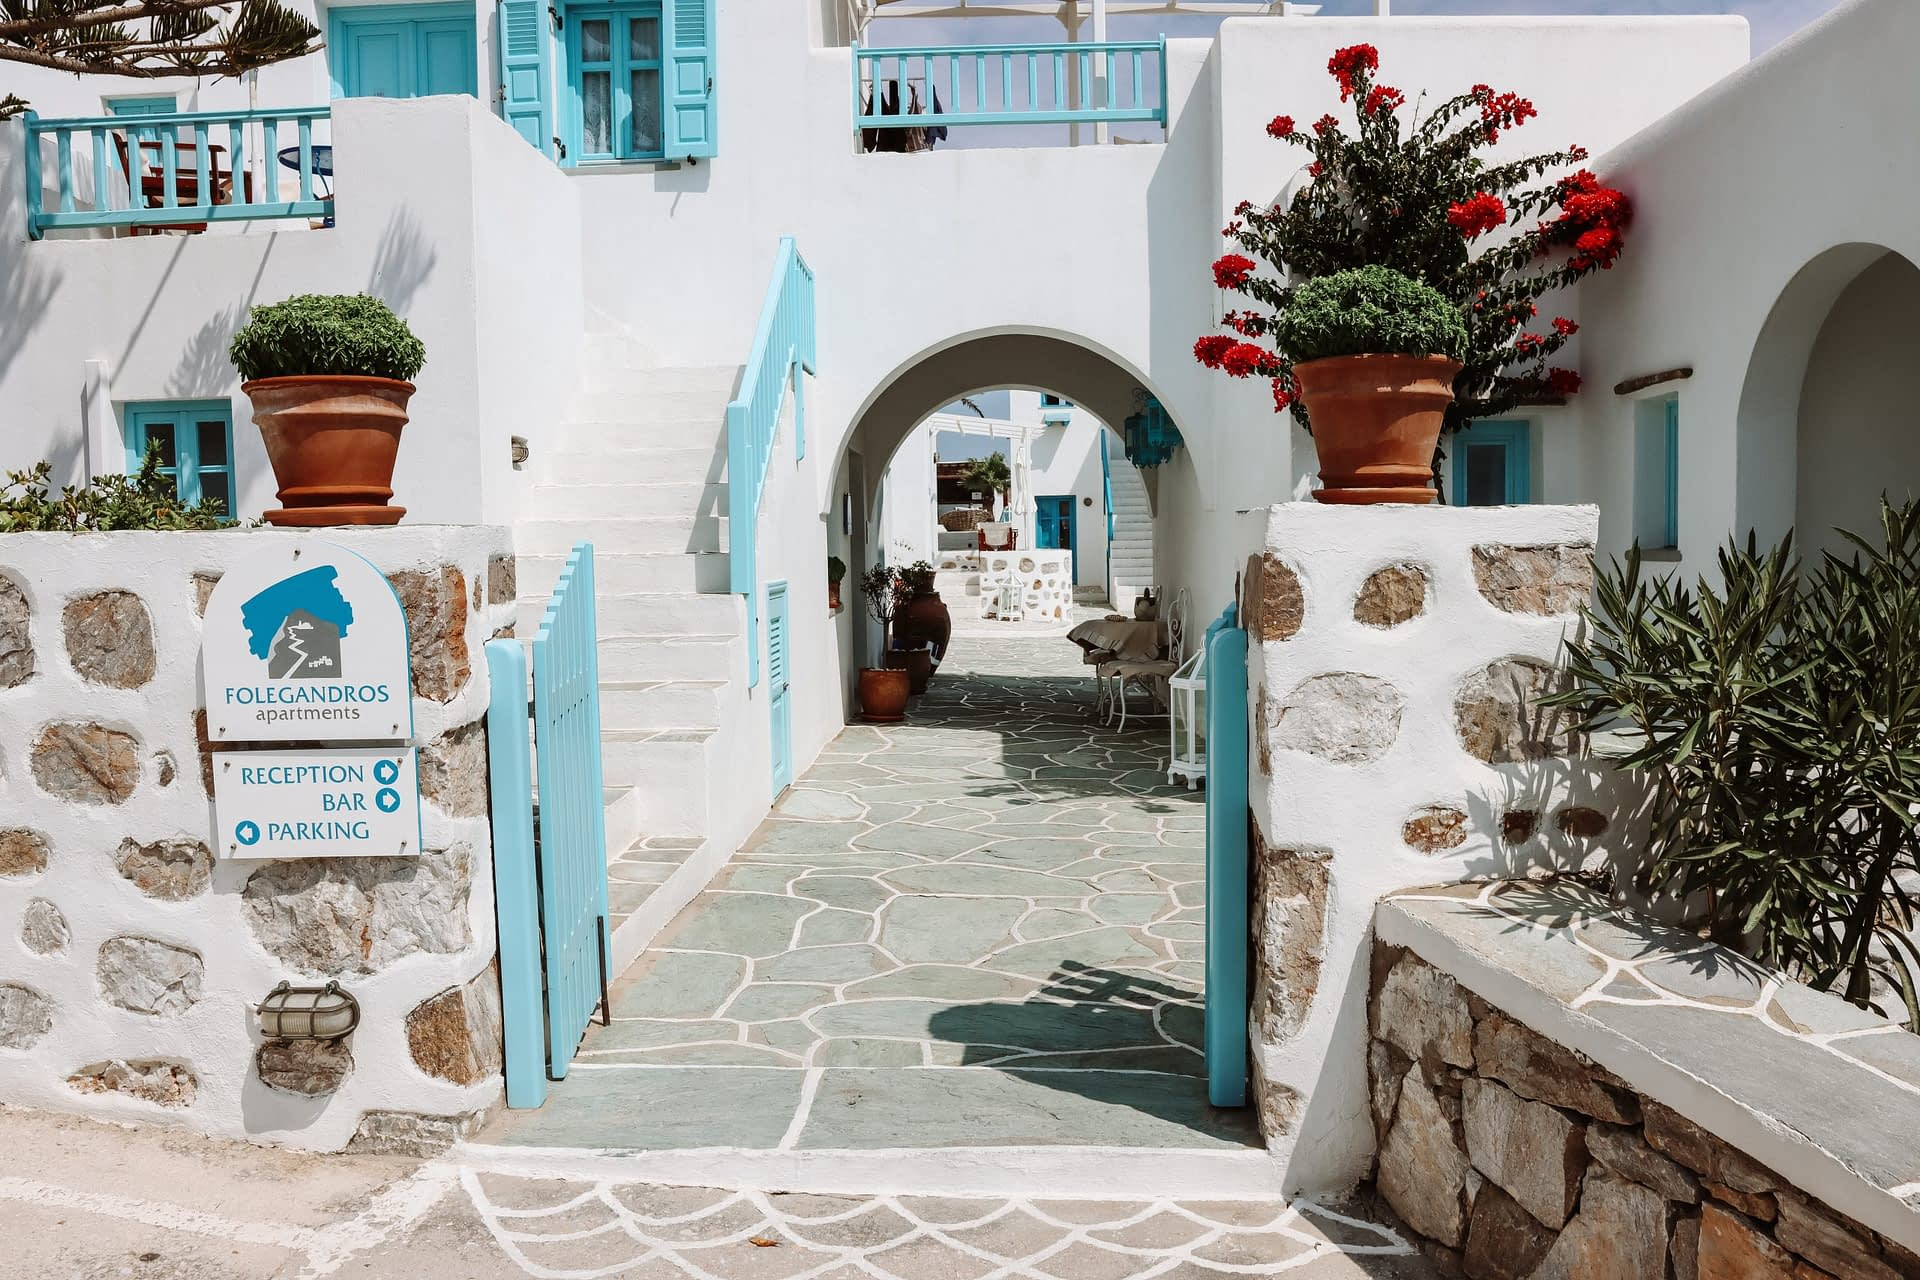 Folegandros apartments. Whitewashed buildings with flowers. Where to stay in Folegandros